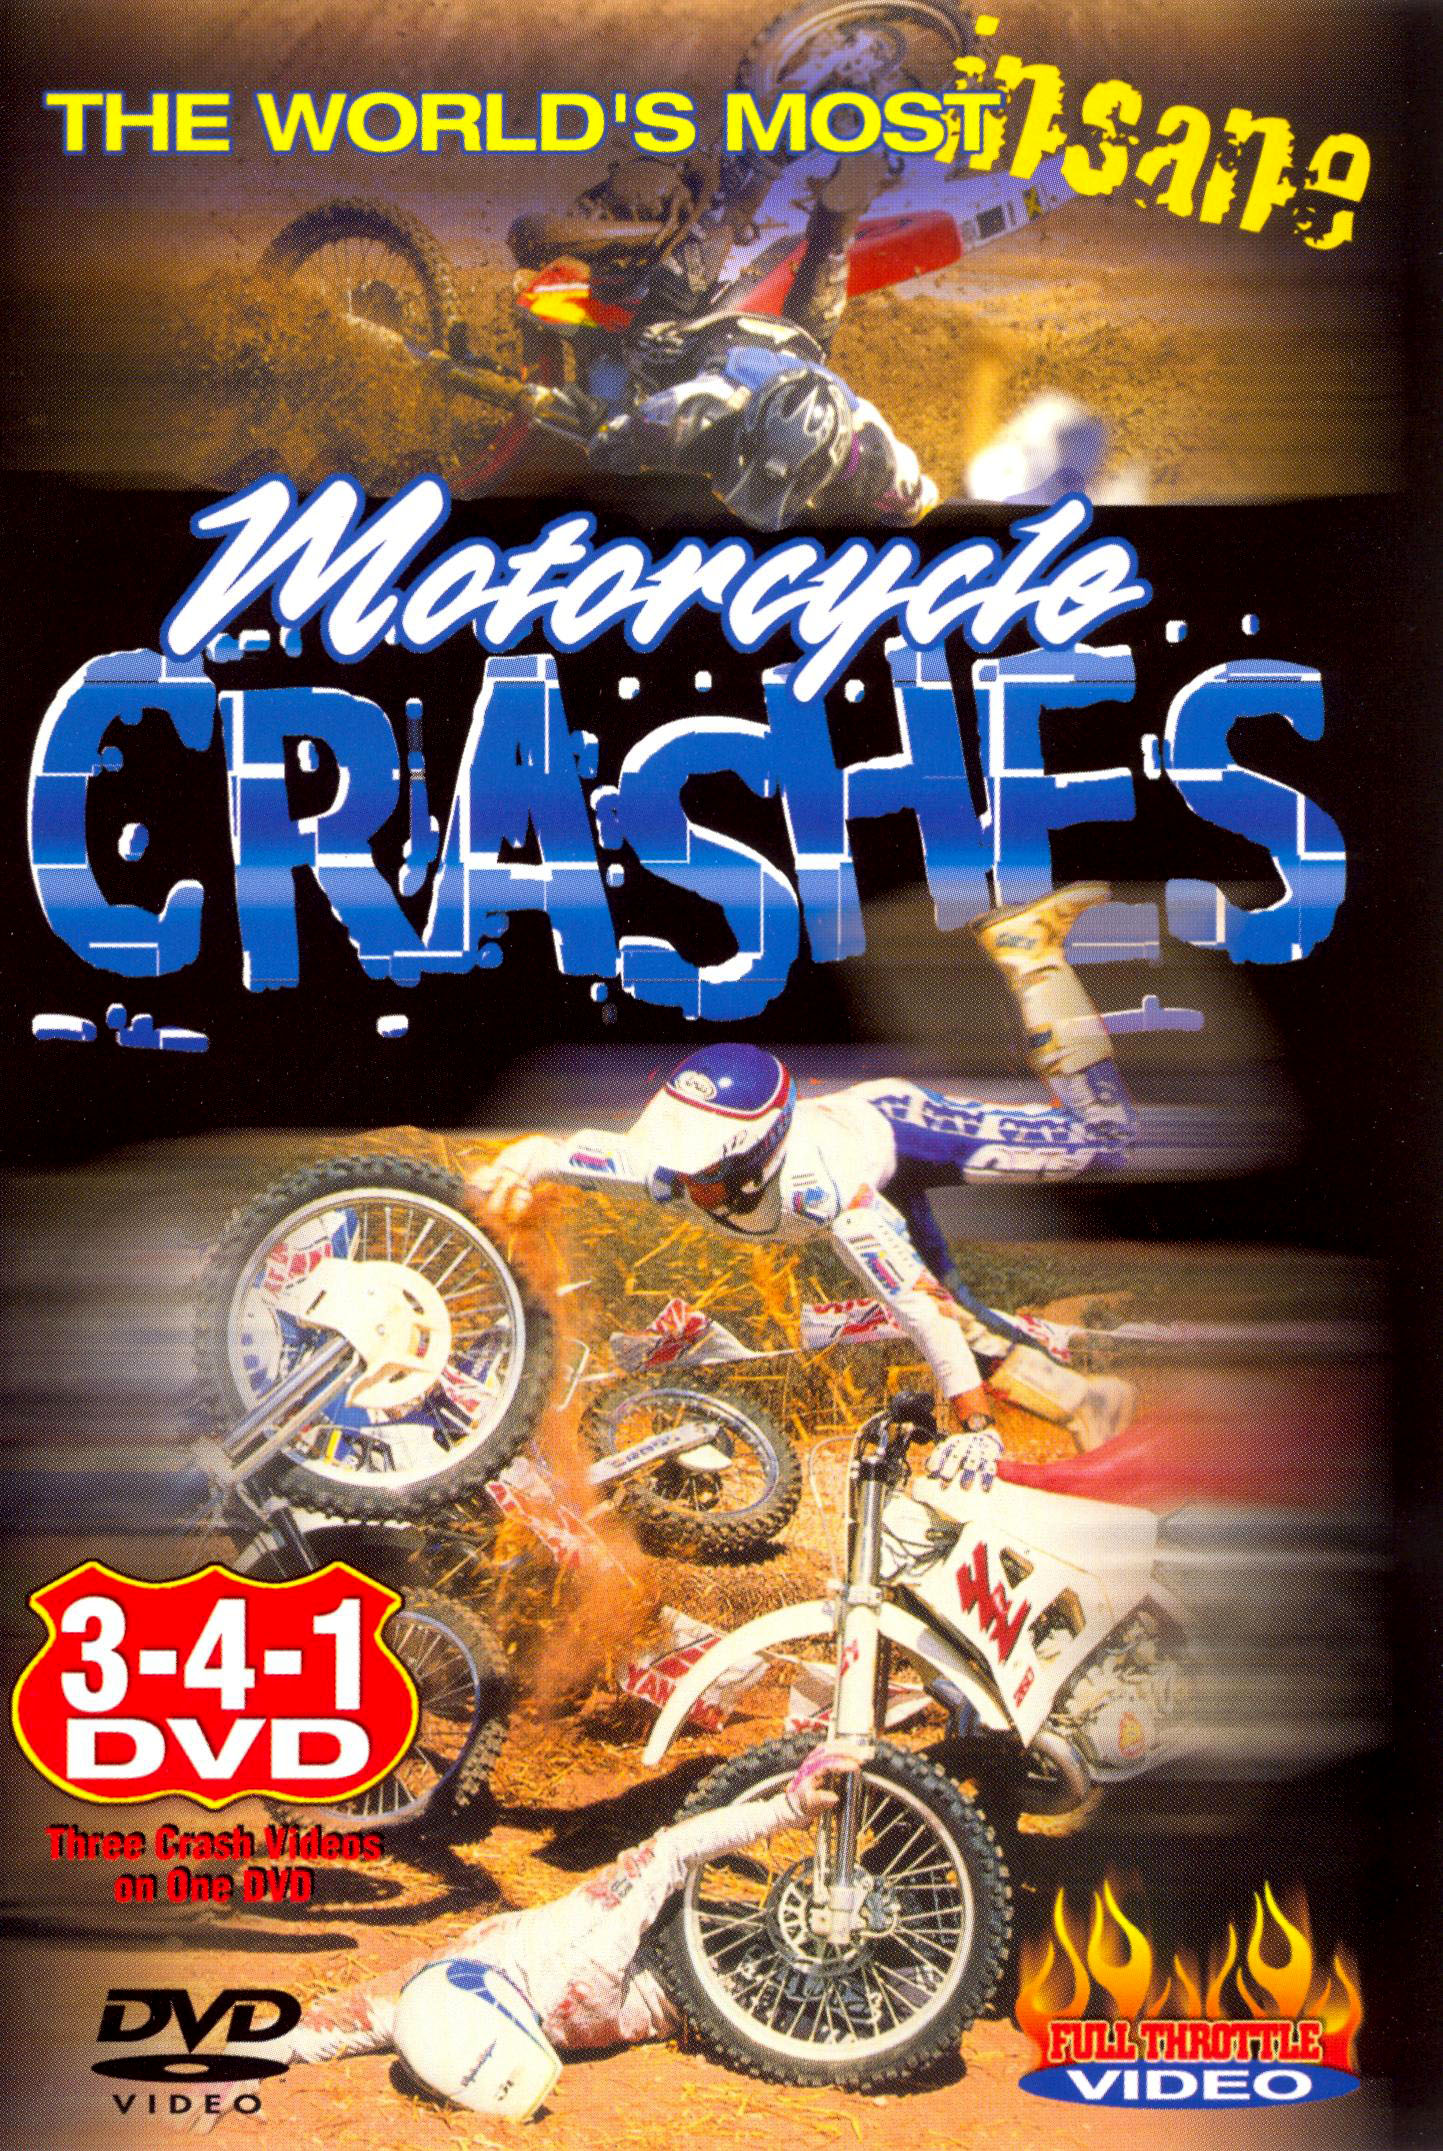 The World's Most Insane Motorcycle Crashes